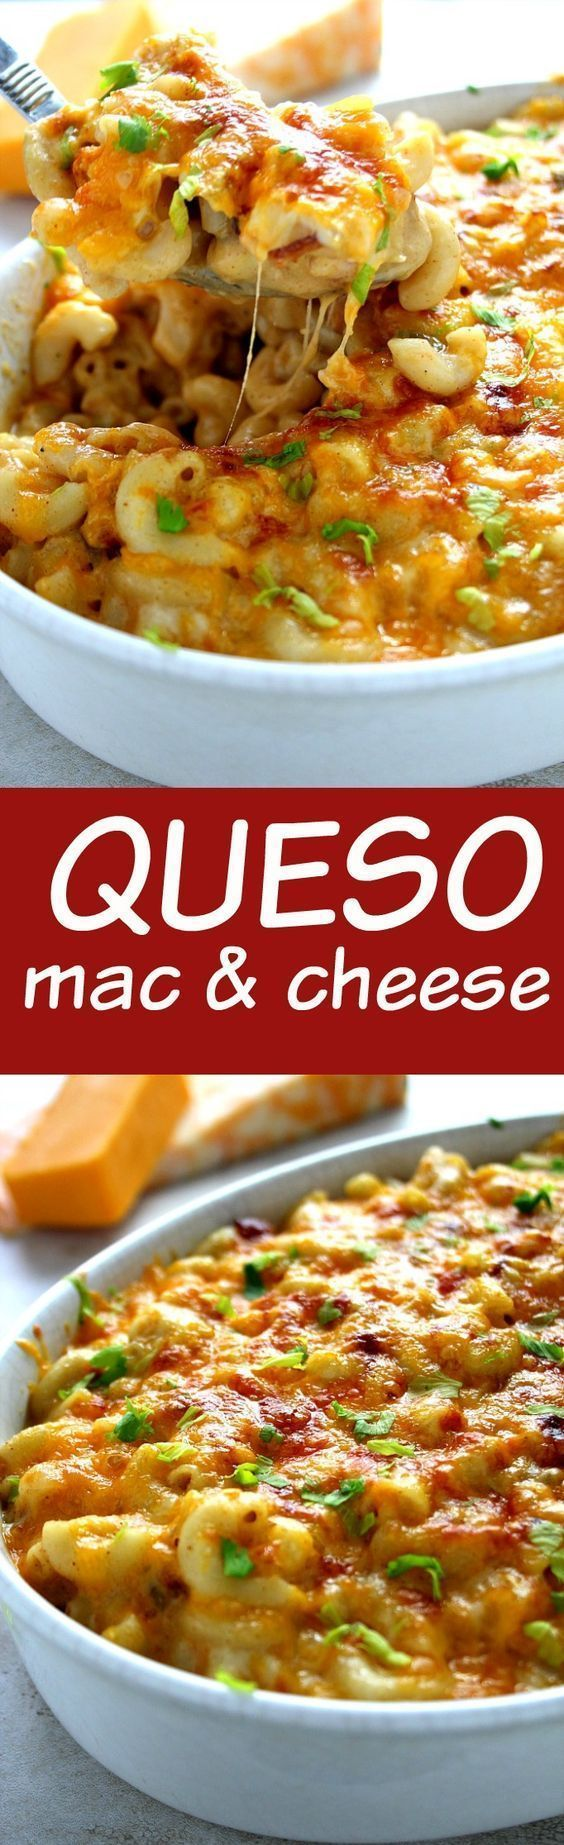 Queso Mac and Cheese with Bacon - cheesy macaroni baked in creamy, spicy queso sauce with bacon. Cheese lovers - this one is for you!